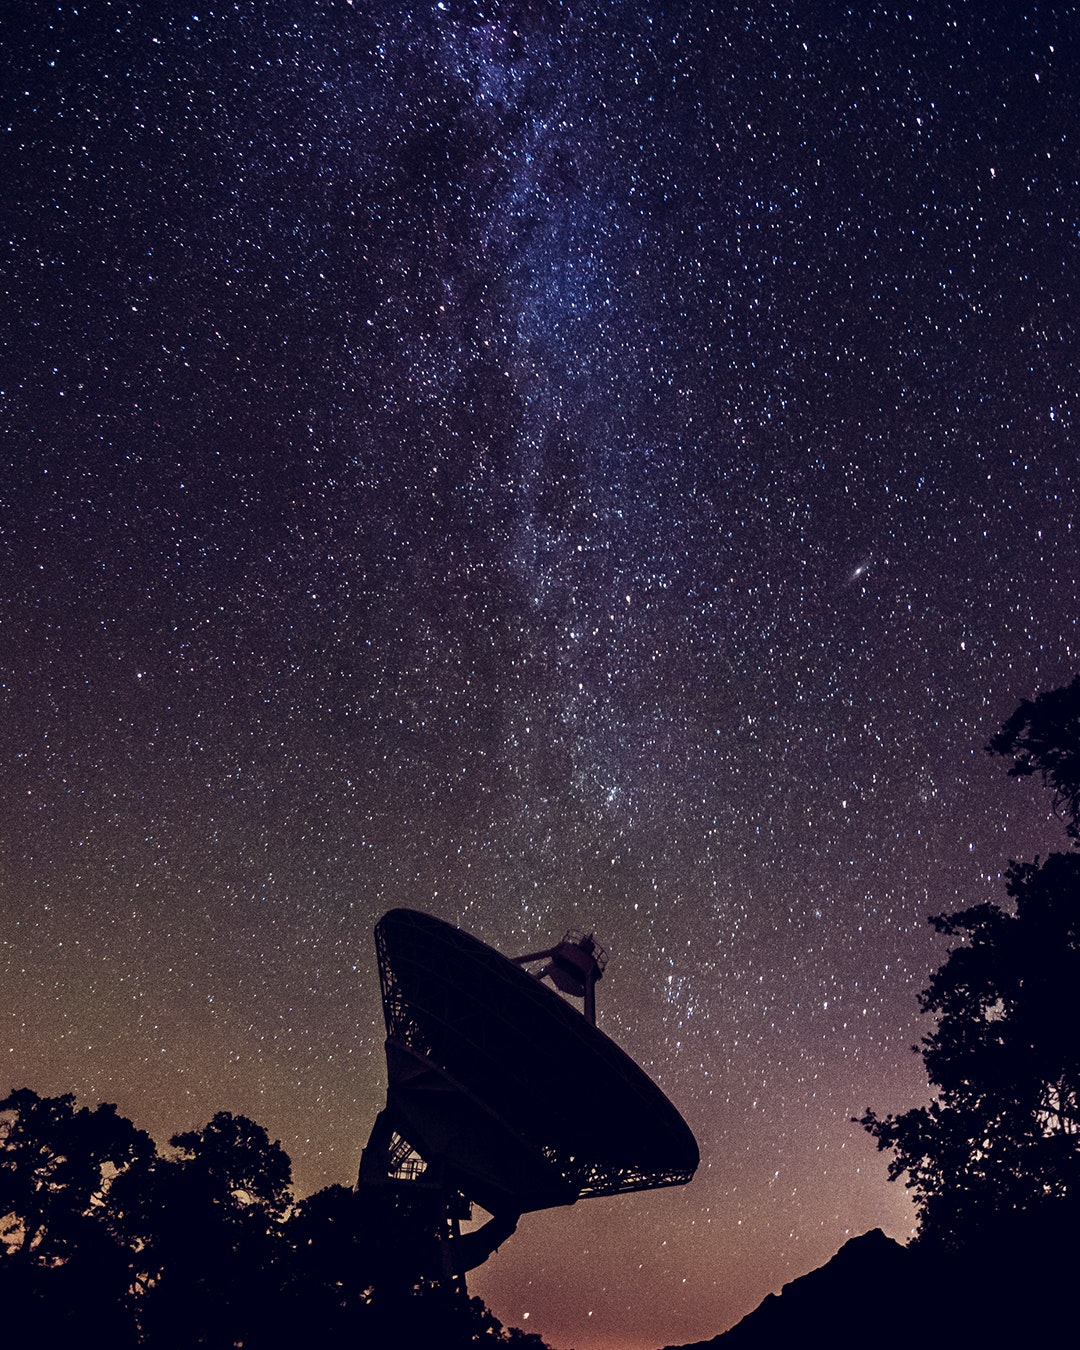 silhouette of observatory dish and bushes against starry night sky